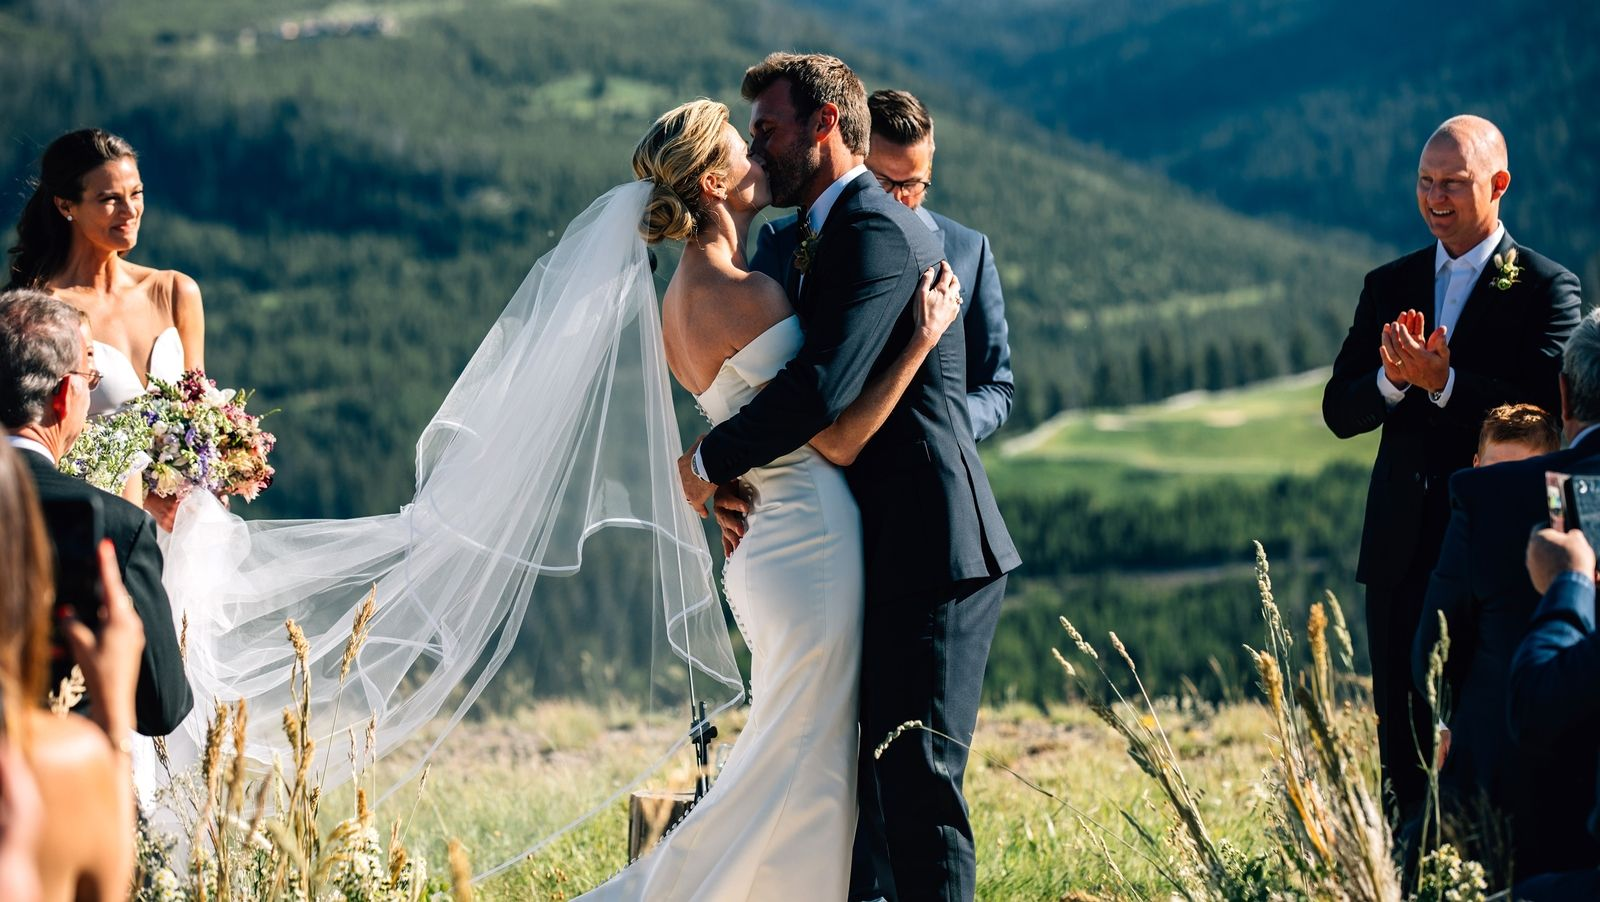 Exclusive: Erin Andrews and Jarret Stoll's Mountain-Top Wedding in Montana